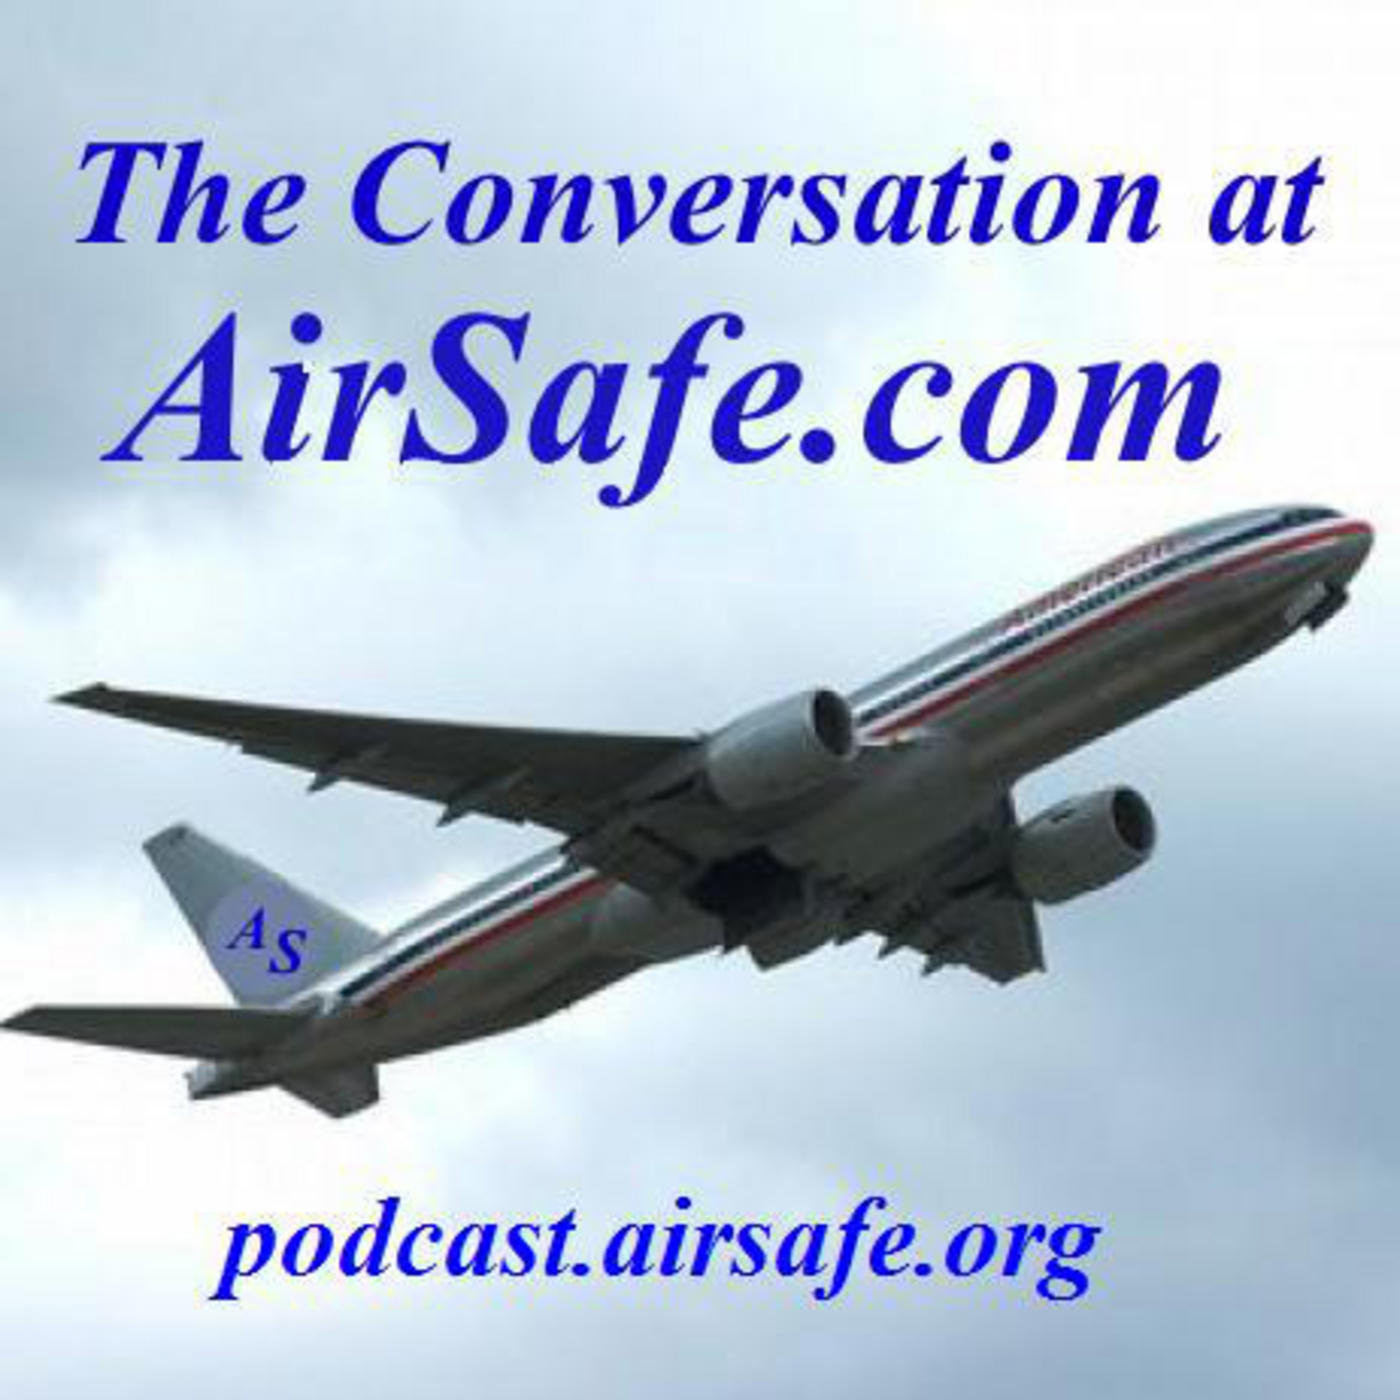 Todd Curtis interviewed in Spanish and English by KIQI radio about Ethiopian 737 MAX crash issues